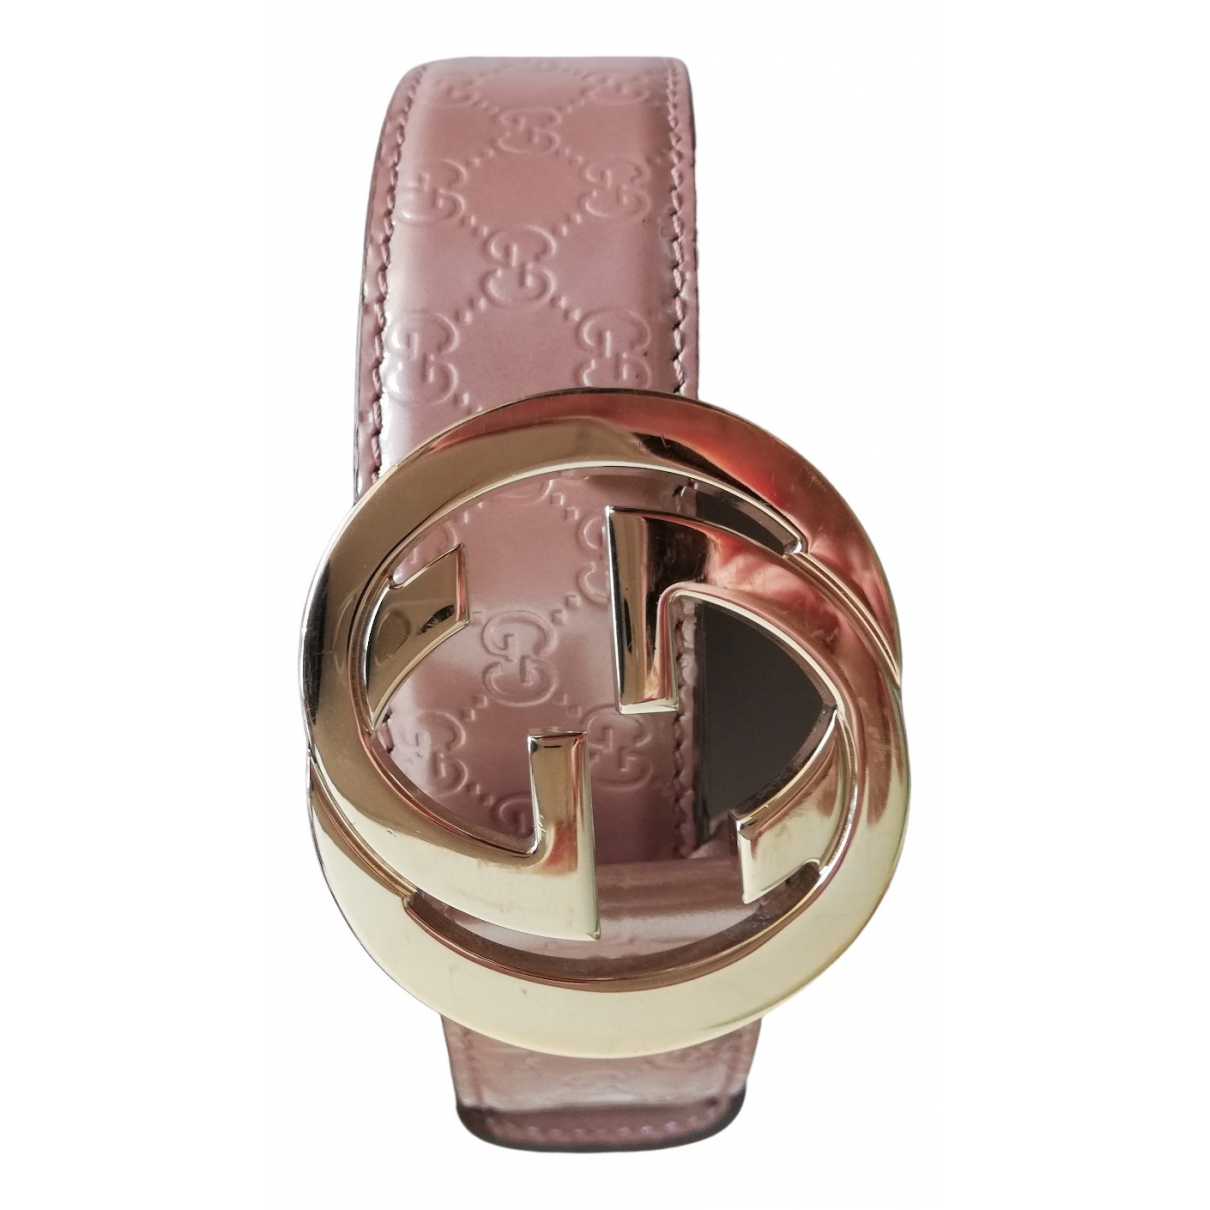 Gucci Interlocking Buckle Pink Patent leather belt for Women 95 cm